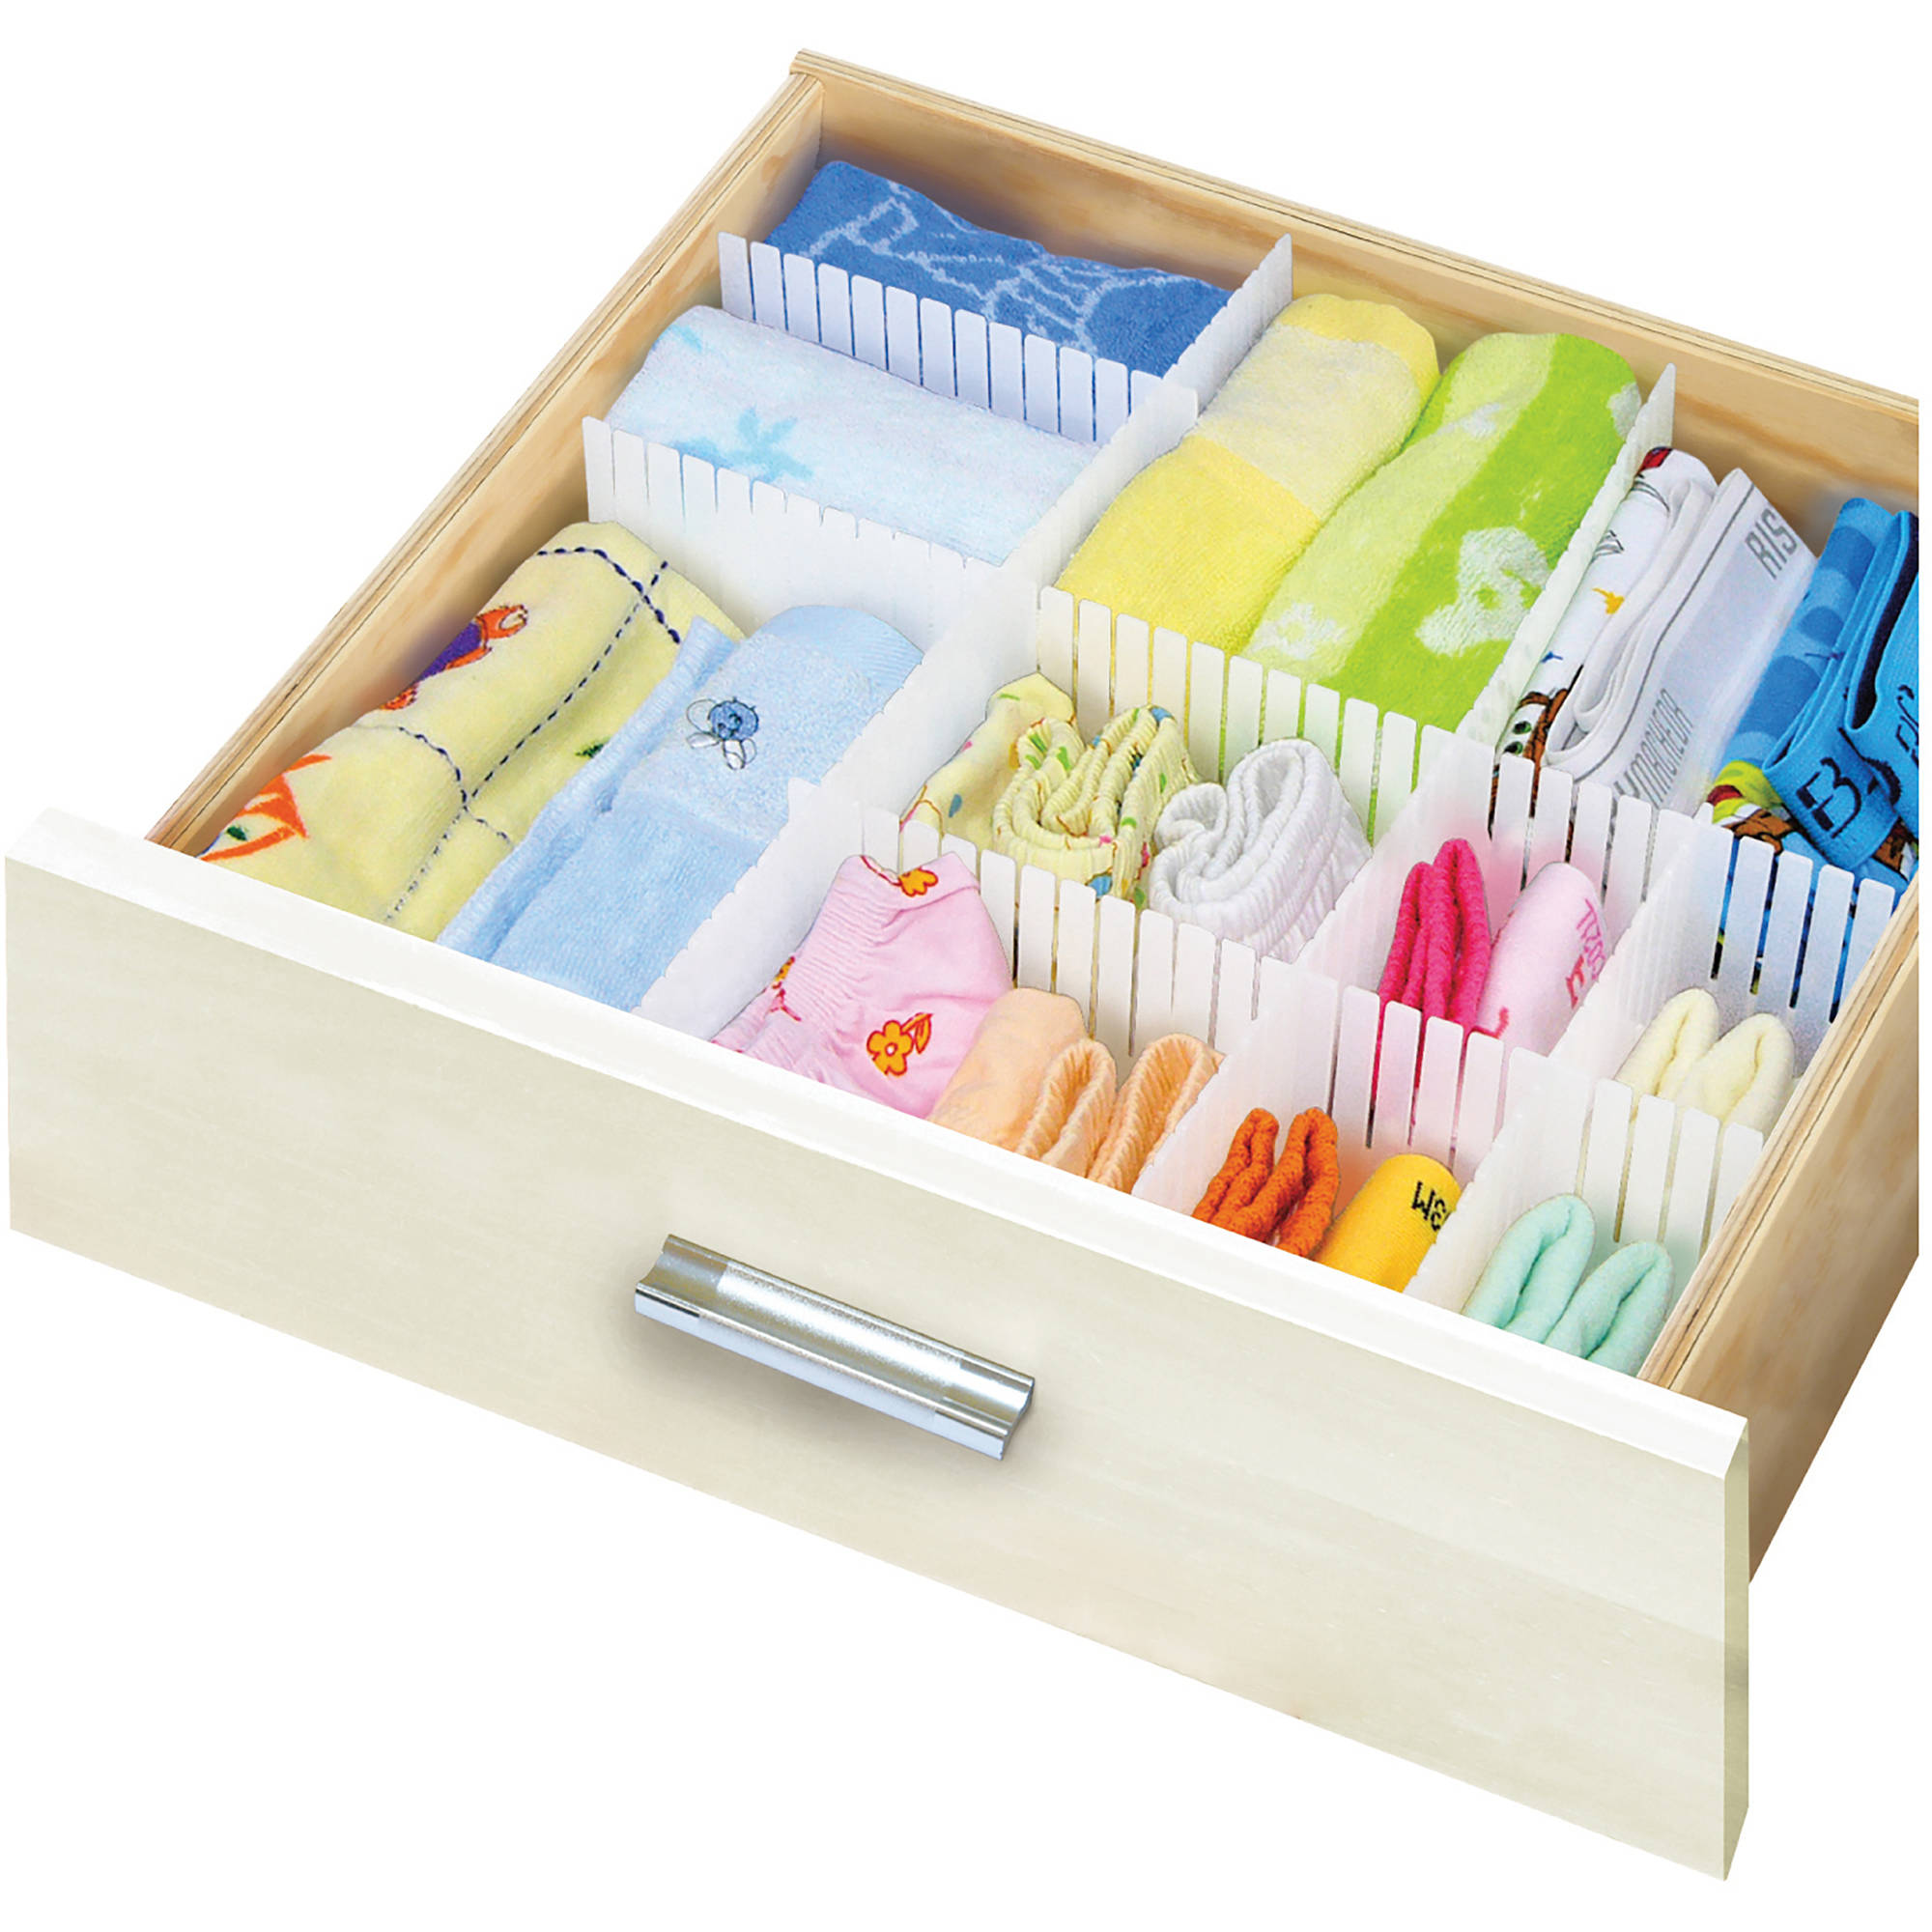 end dresser drawers drawer dream inserts organize home organizers for best my lifestyle tips organizing high